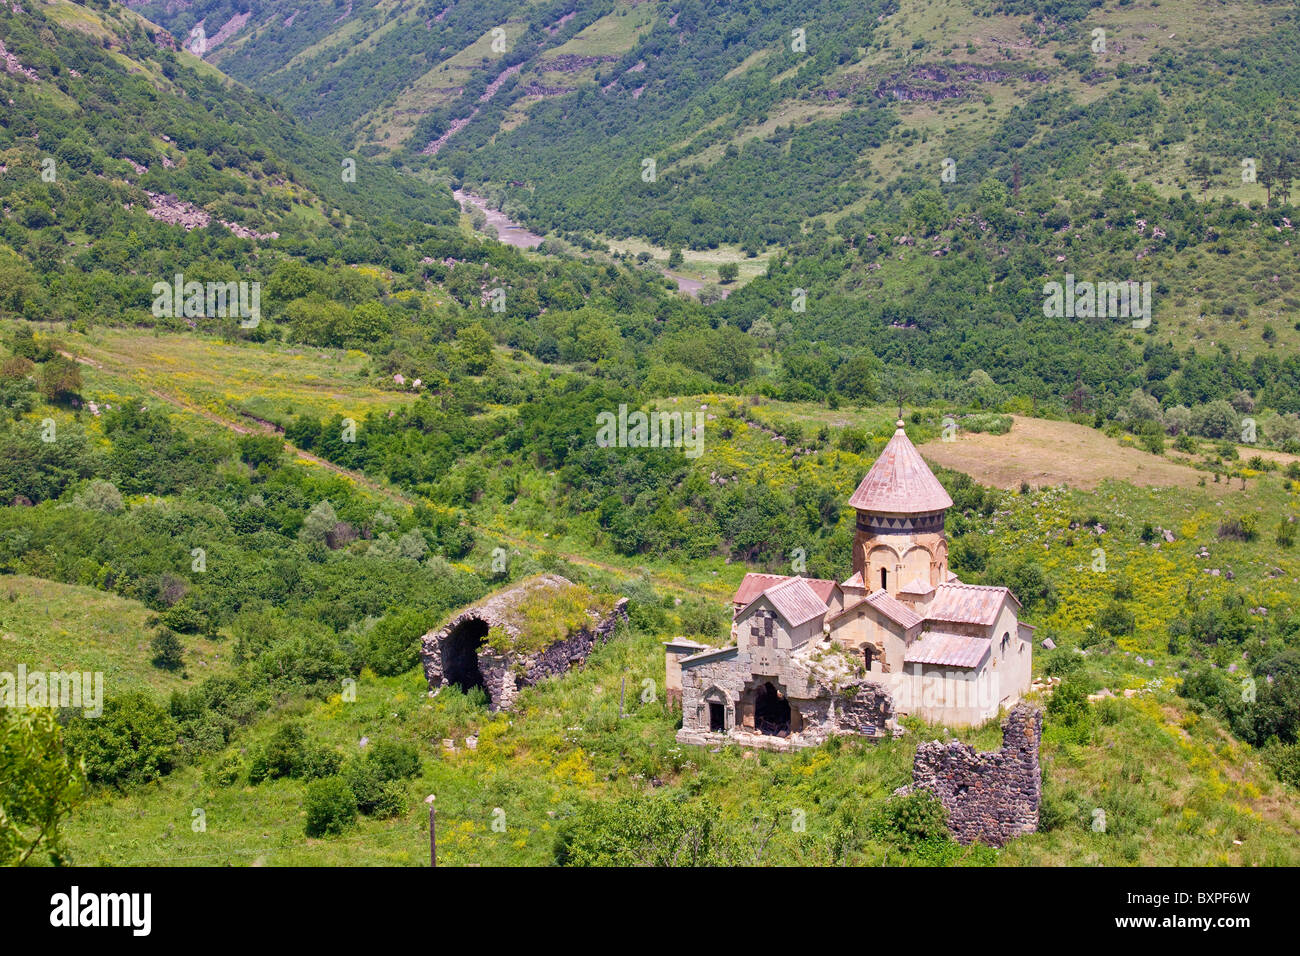 Hnevank Armenian Apostolic Church monastery near the Debed Canyon in Armenia - Stock Image